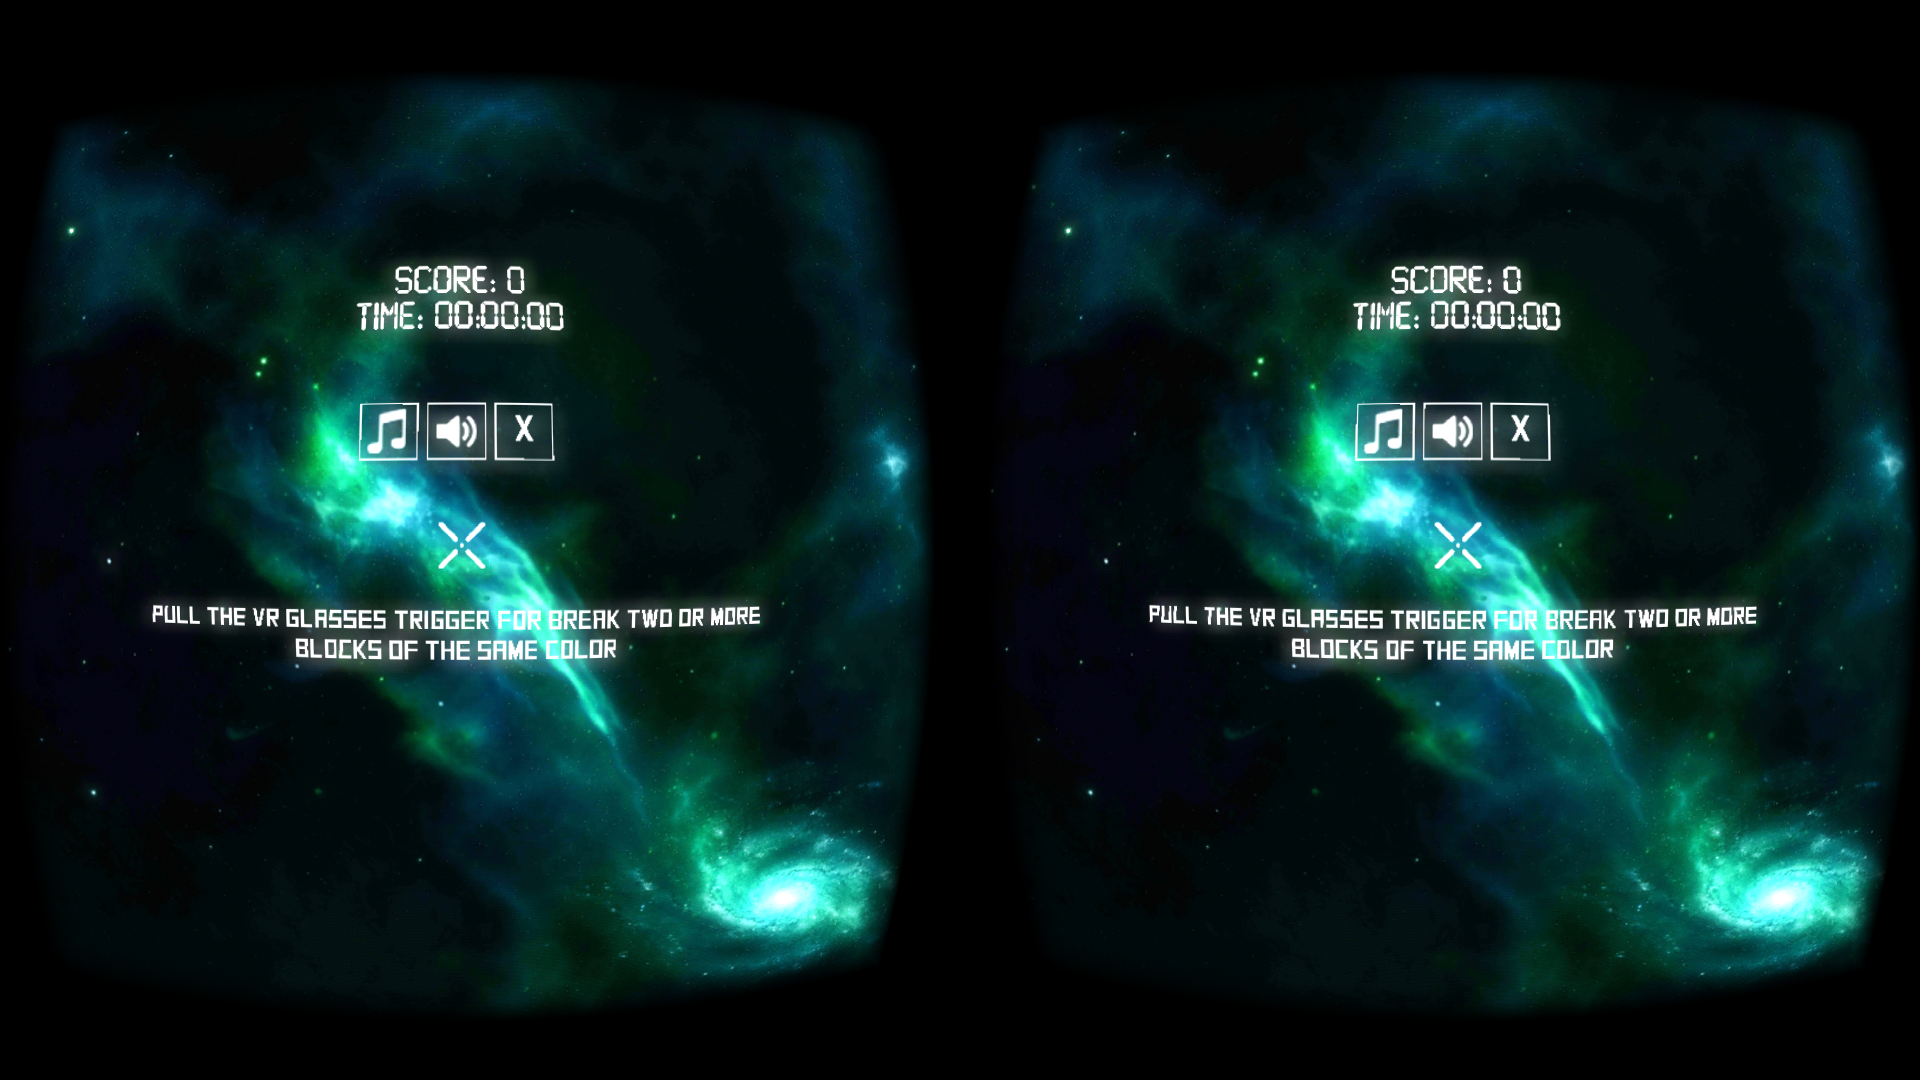 screenshot 3 Blocks VR content image